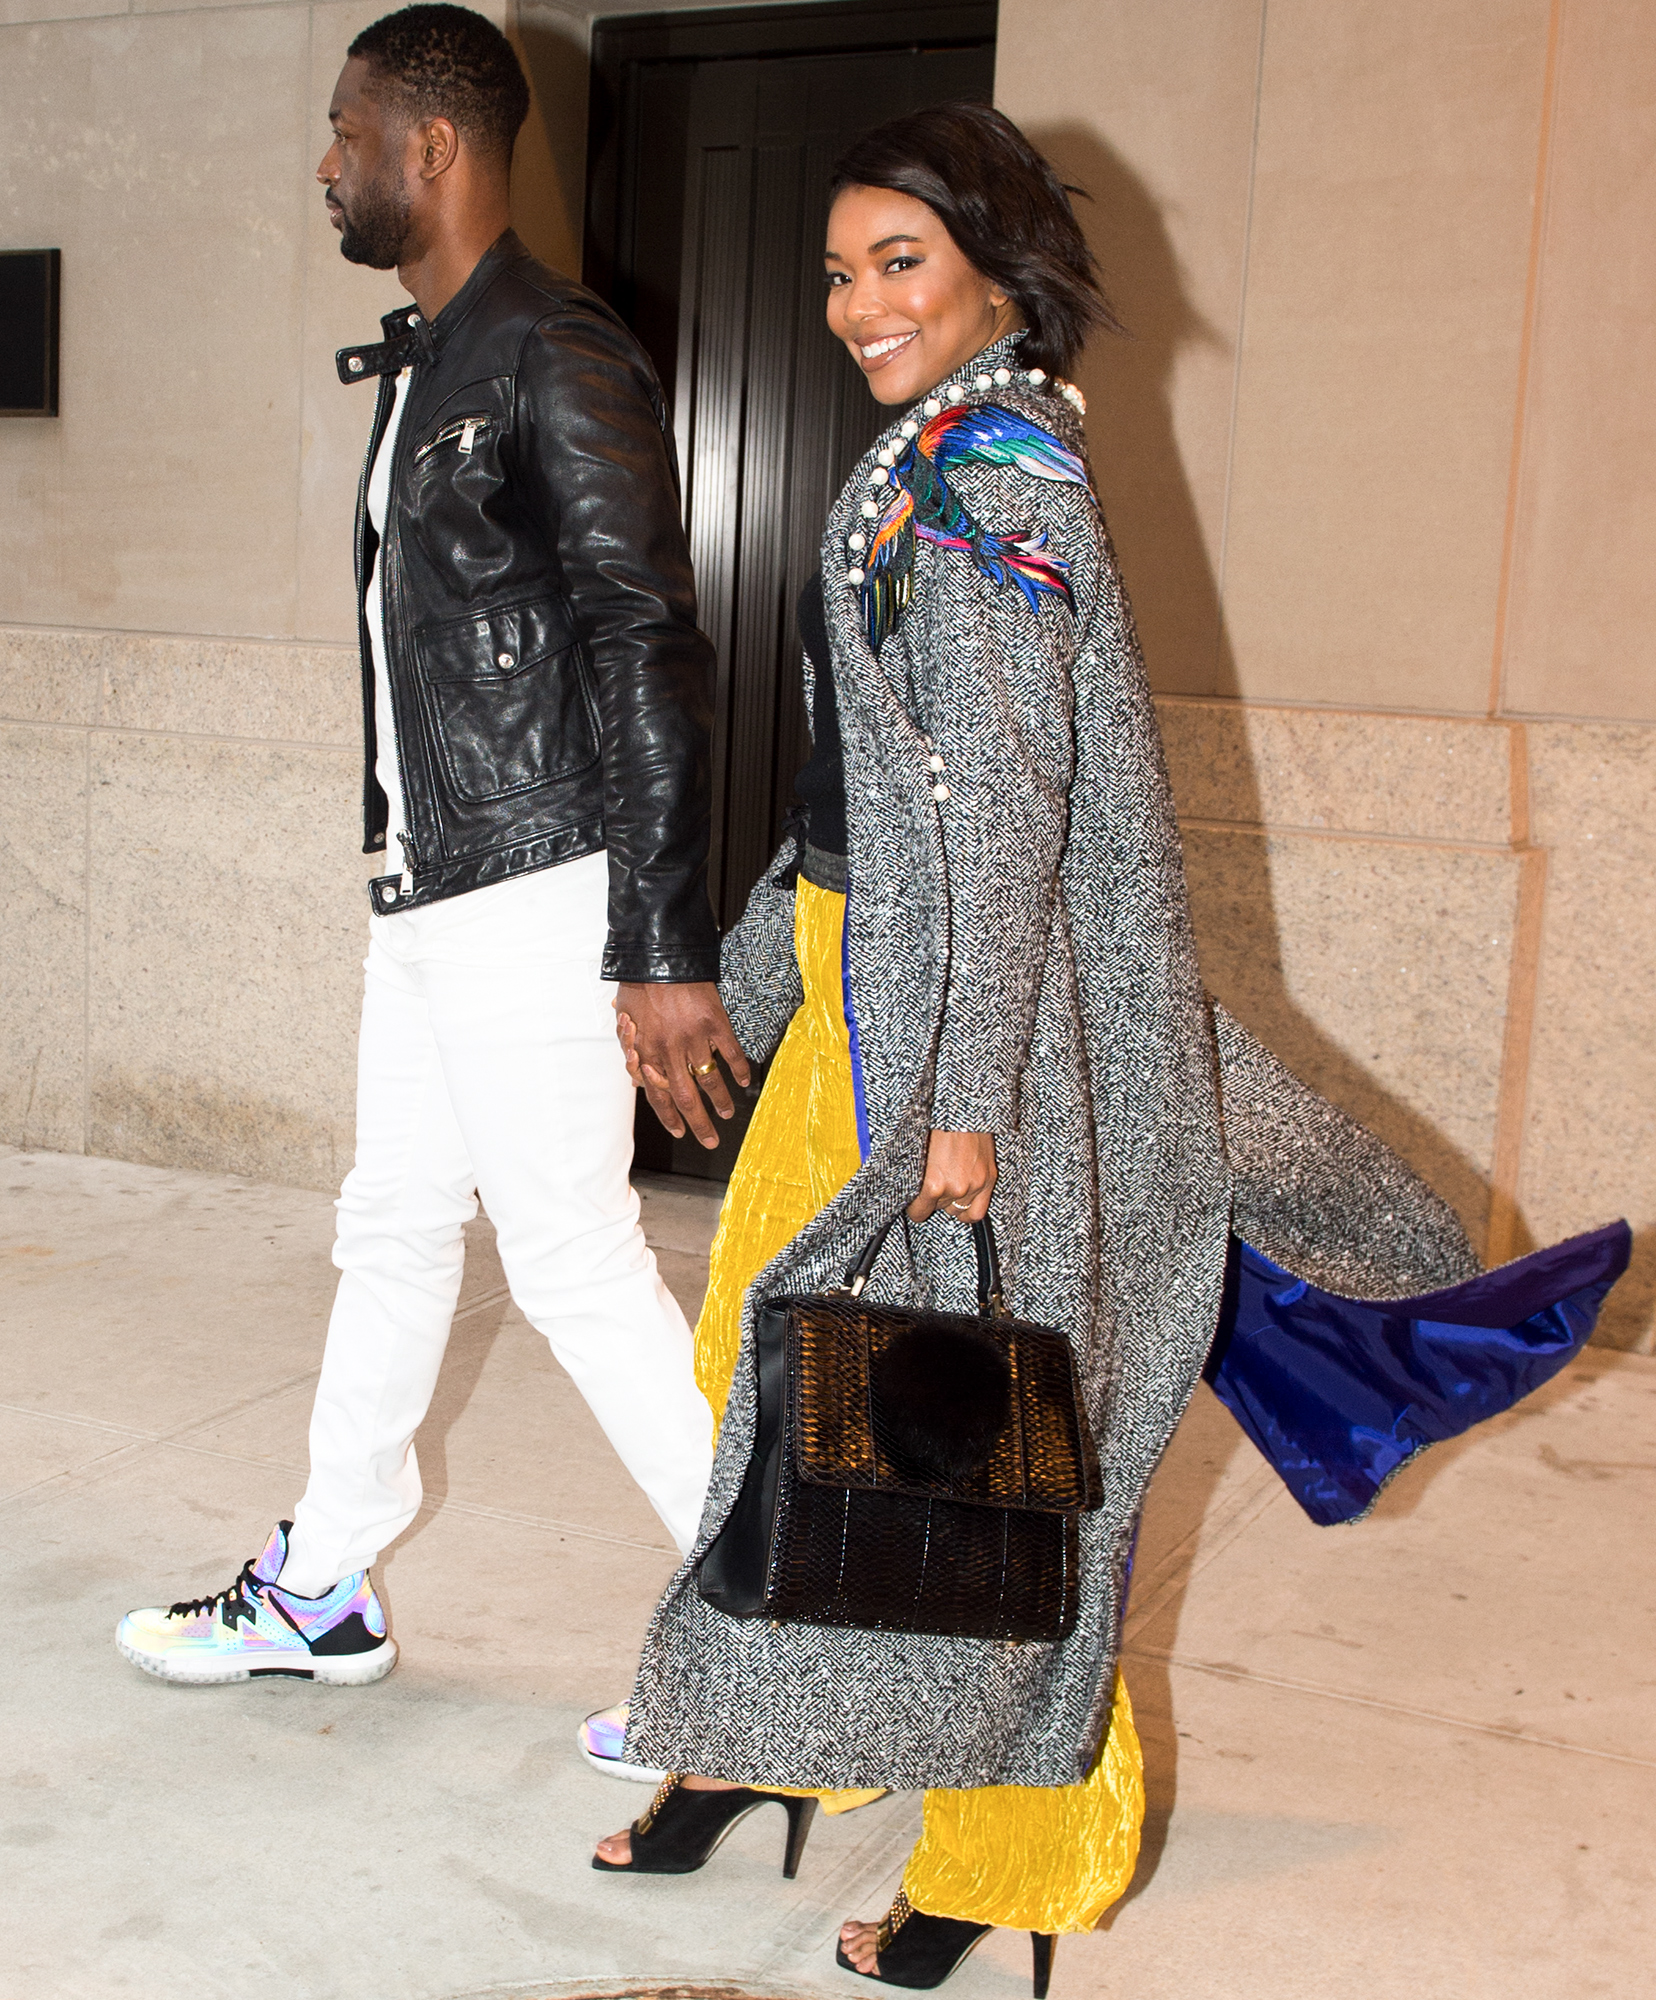 EXCLUSIVE: Gabrielle Union and Dwayne Wade in NYC